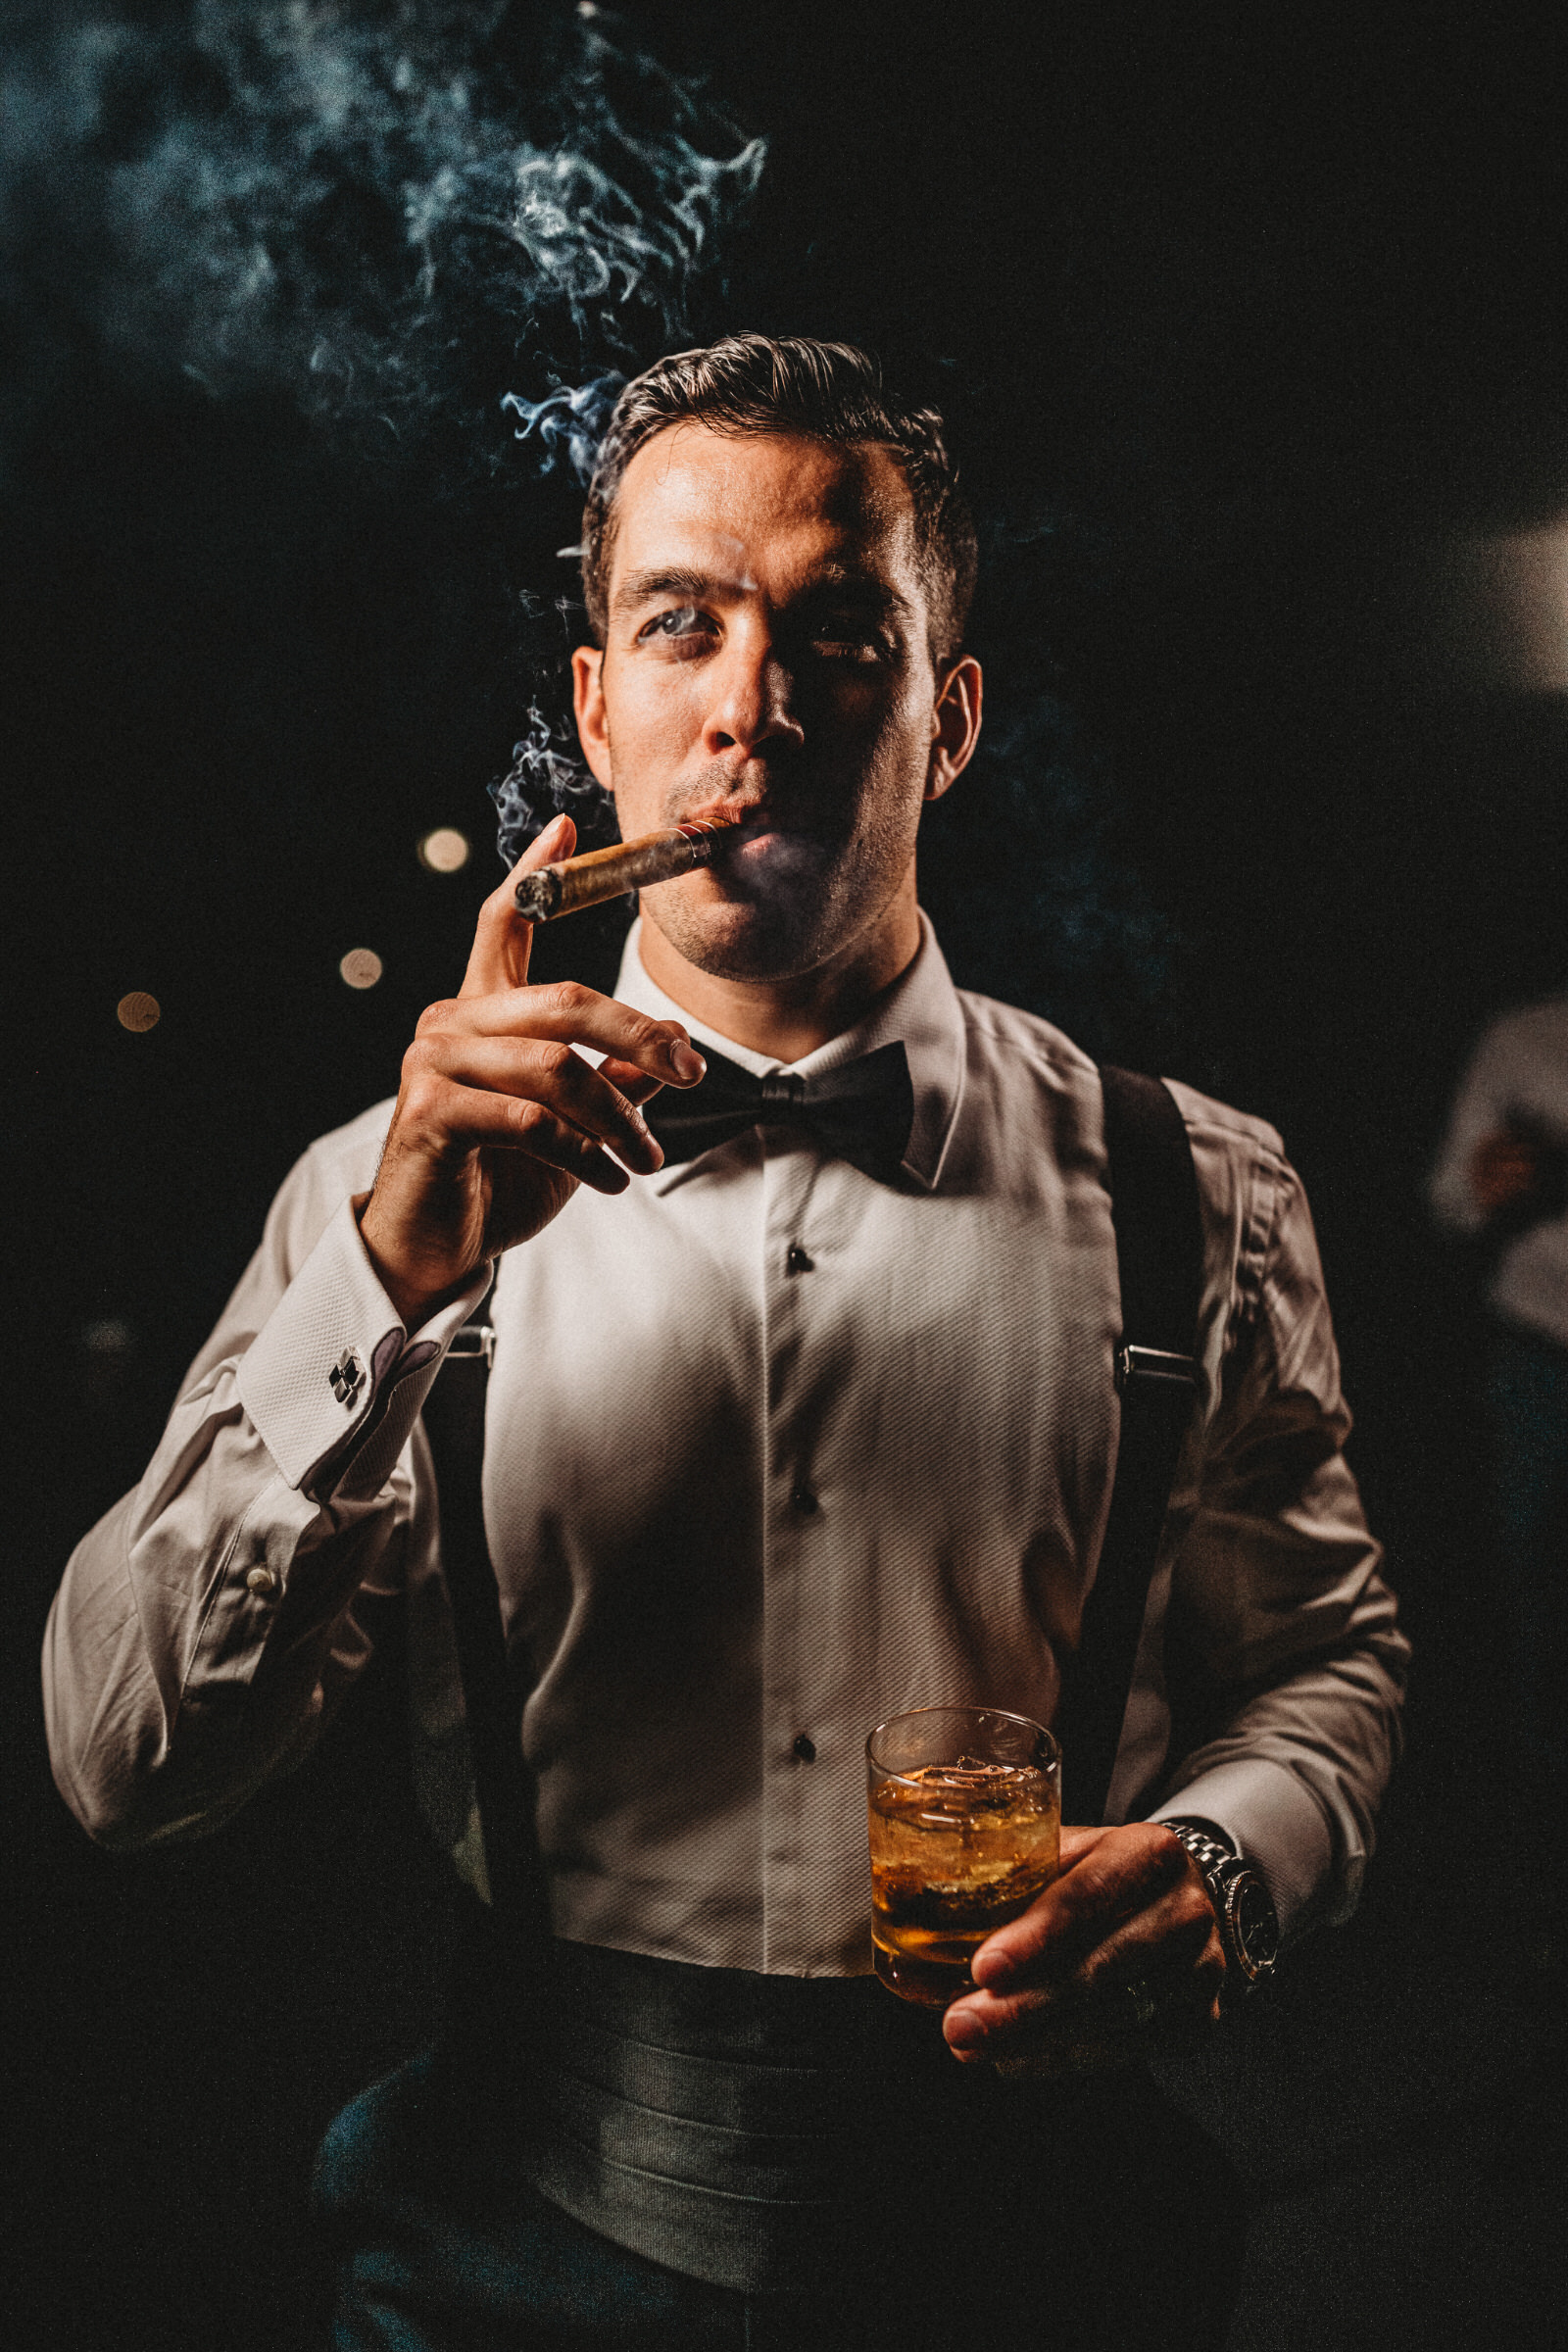 close-up-portrait-of-groom-with-cigar-photo-by-esteban-gil-photography-connecticut